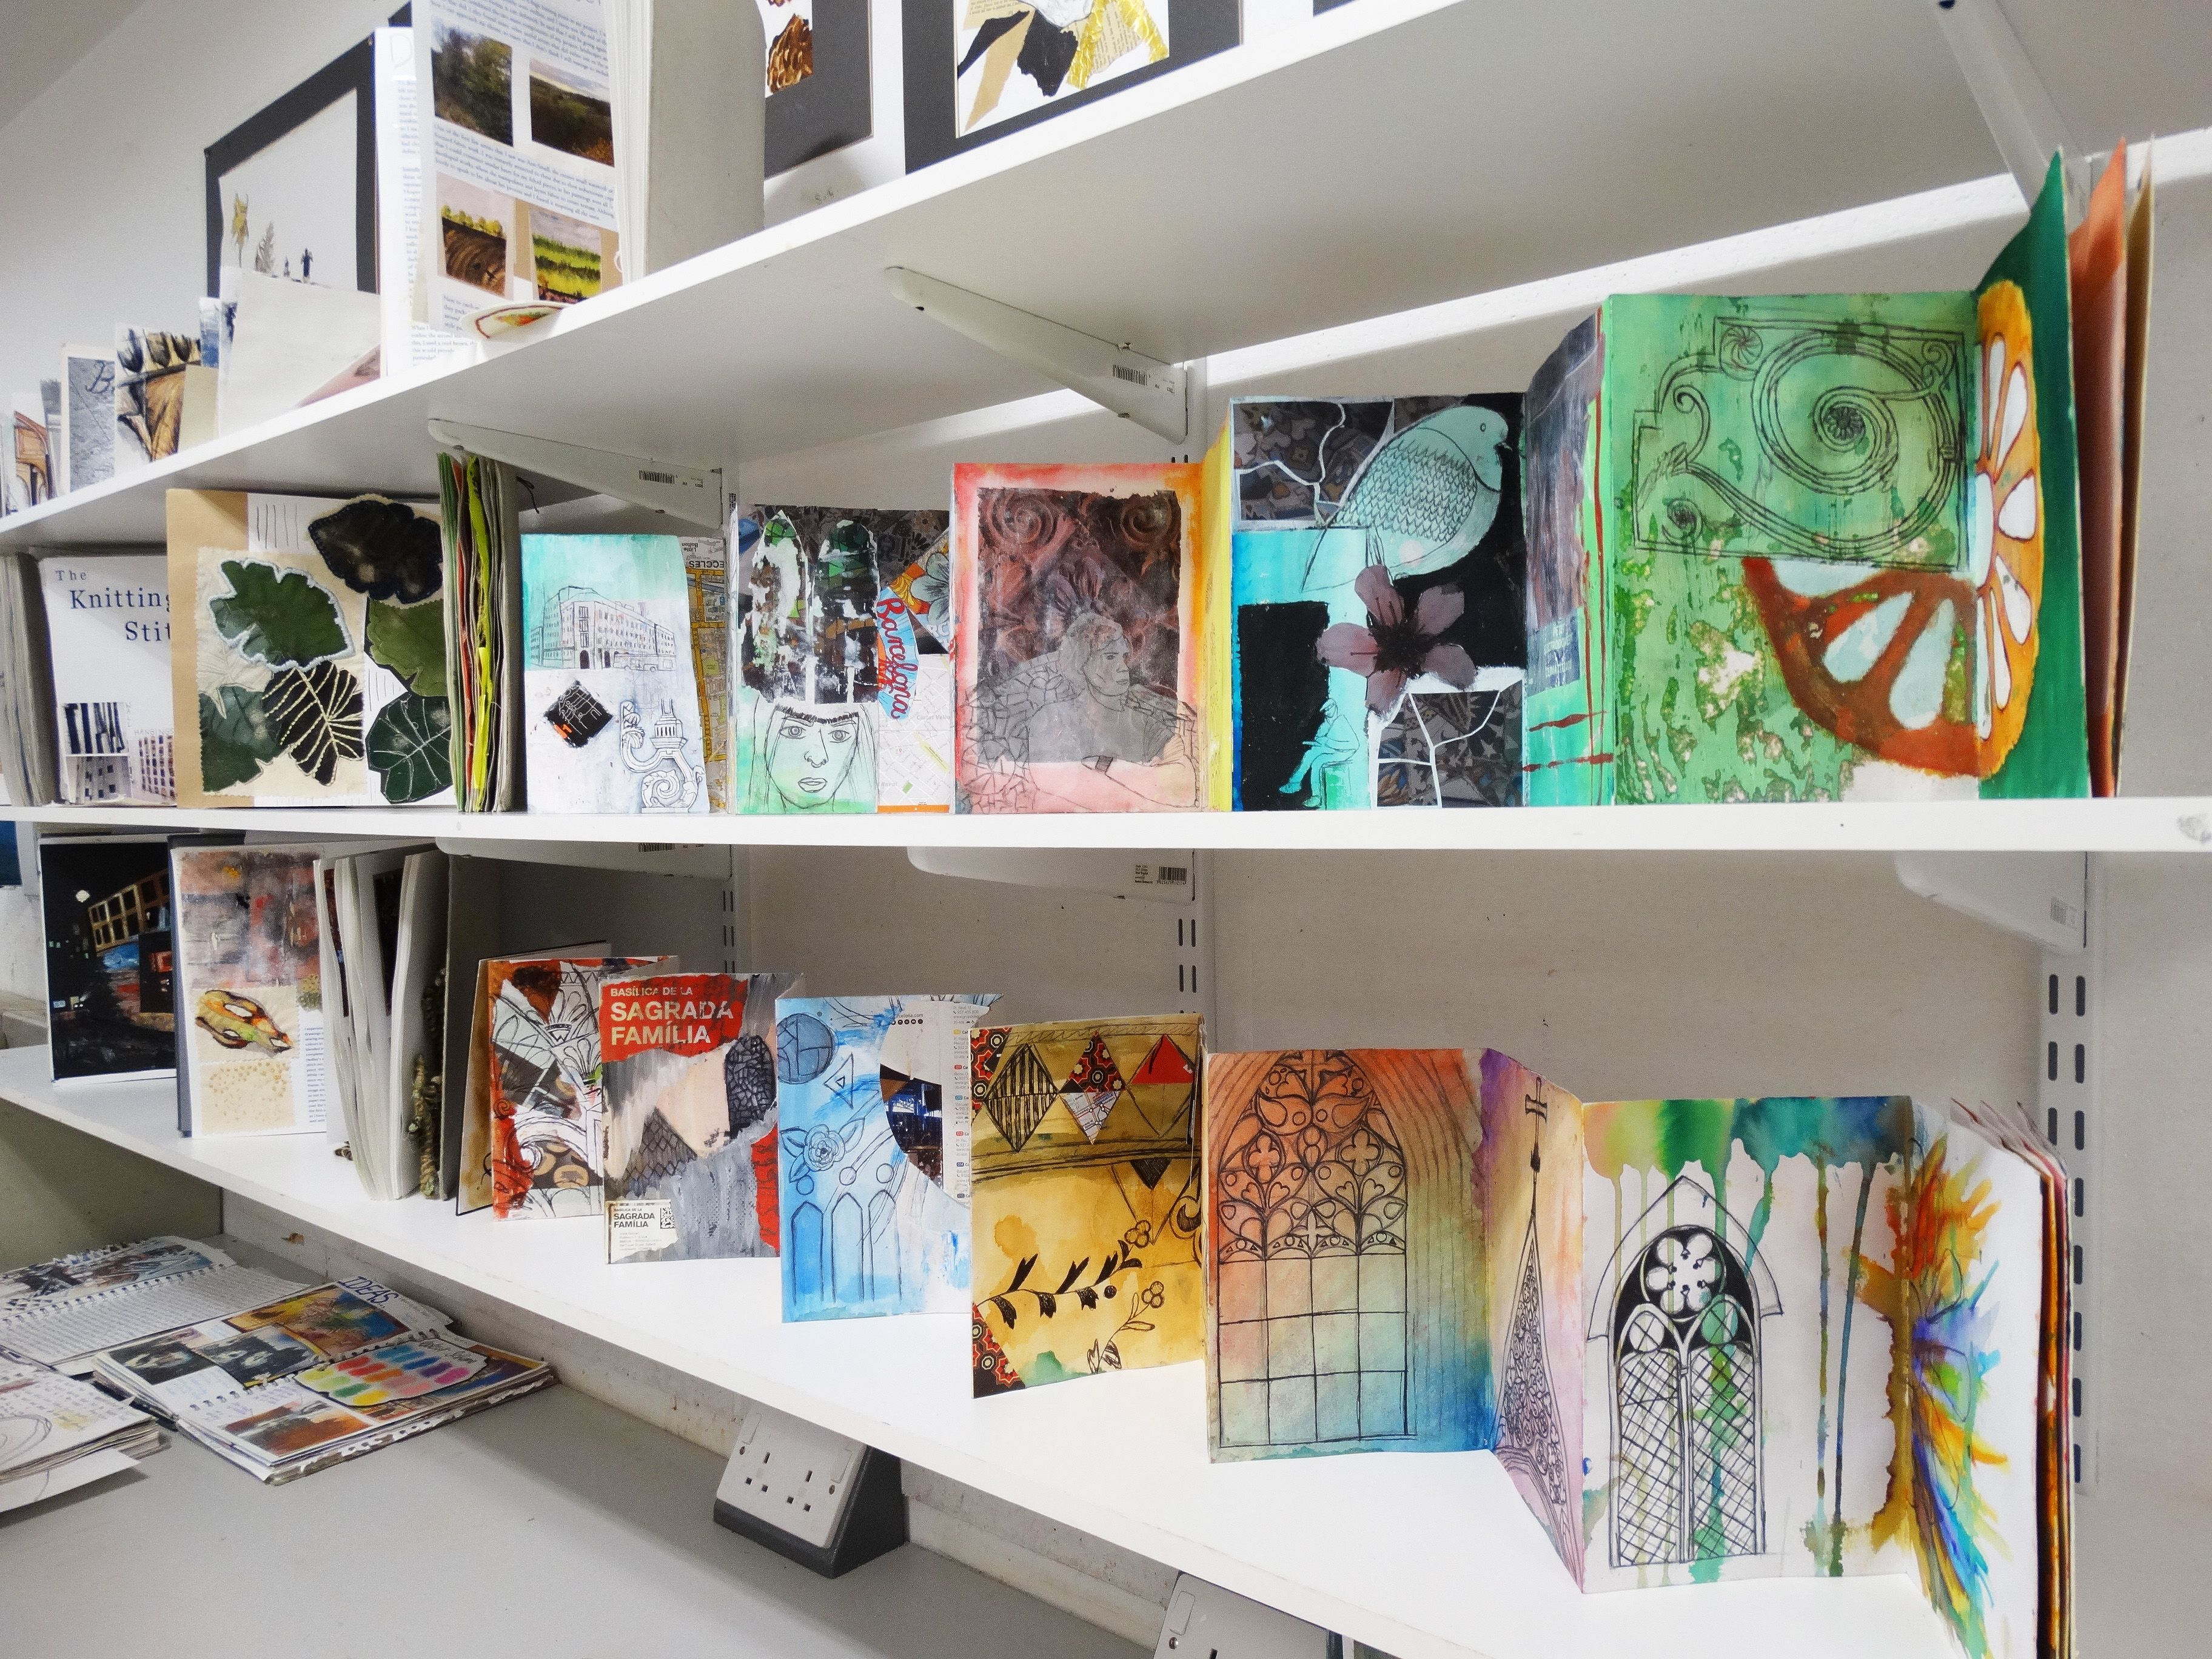 Exhibition Stand Gumtree : Image result for 3d photographic work exhibition creative photo